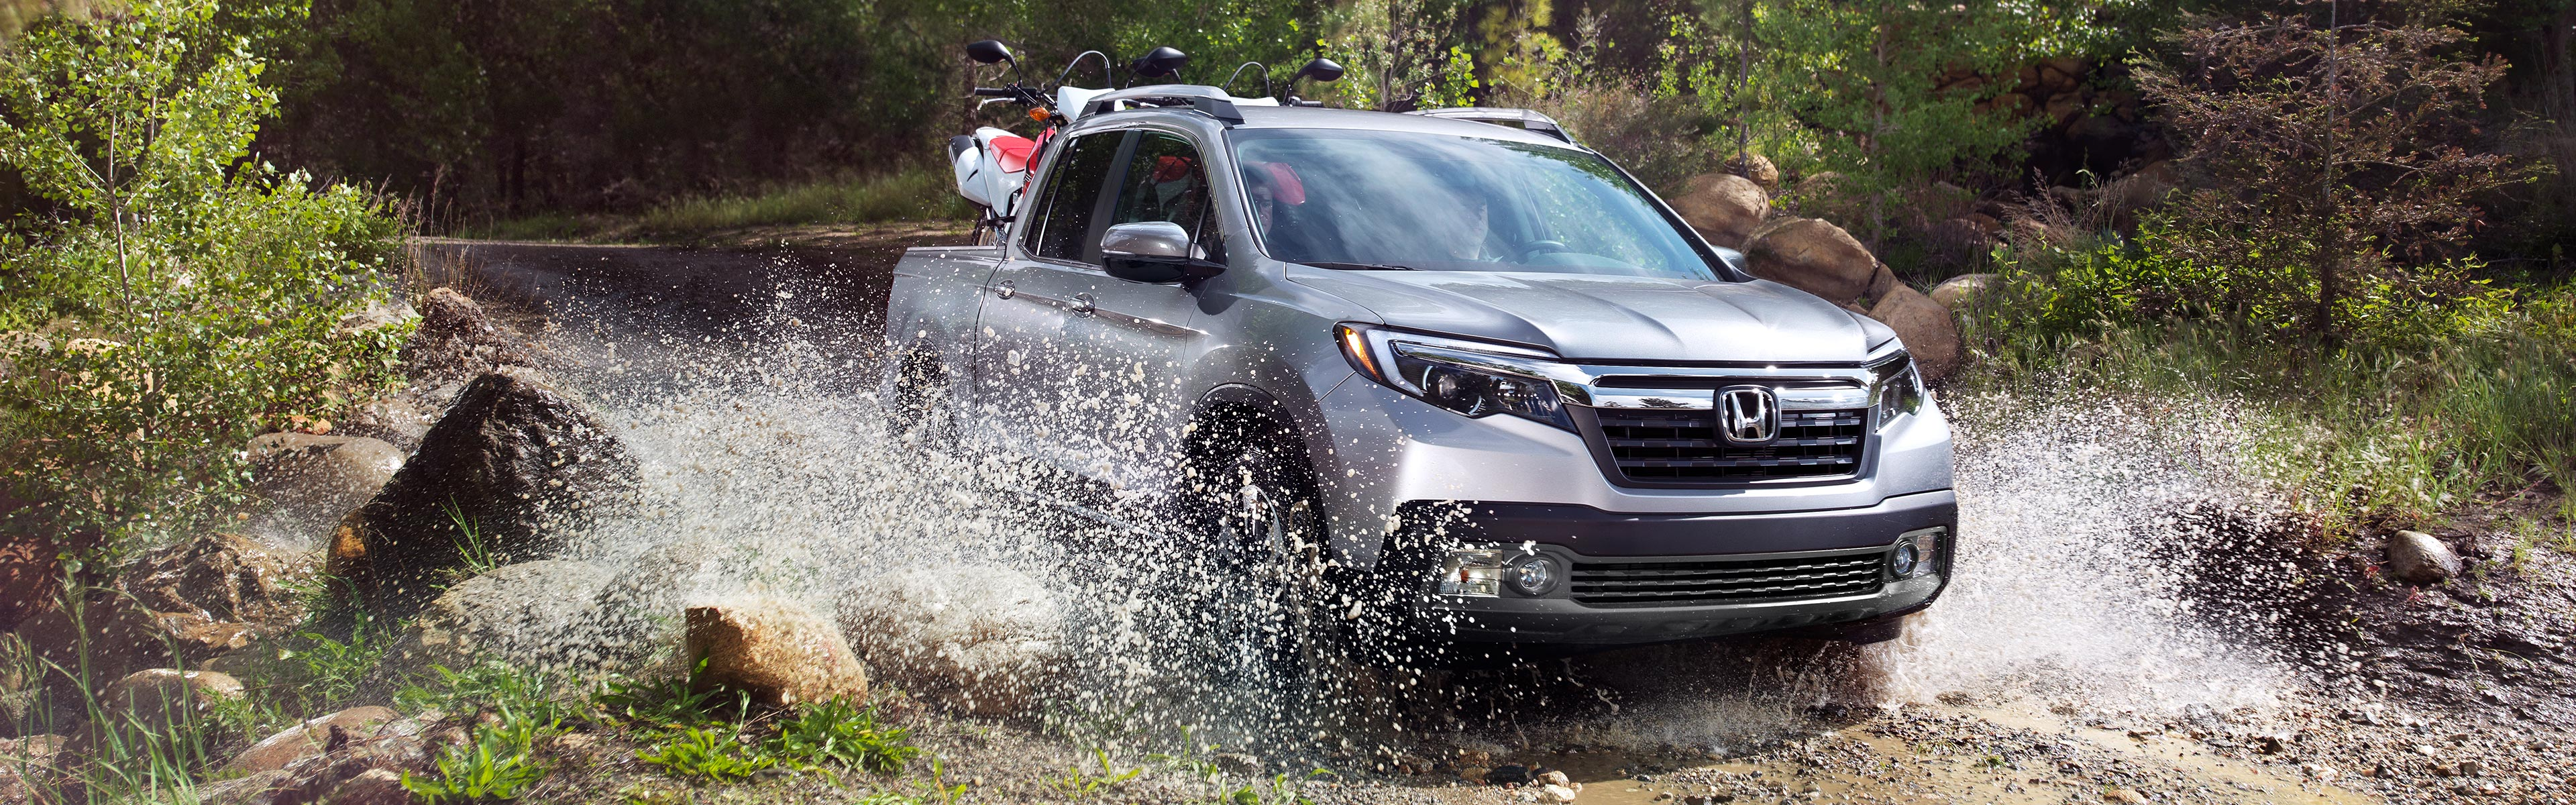 Image of 2017 Ridgeline driving off road